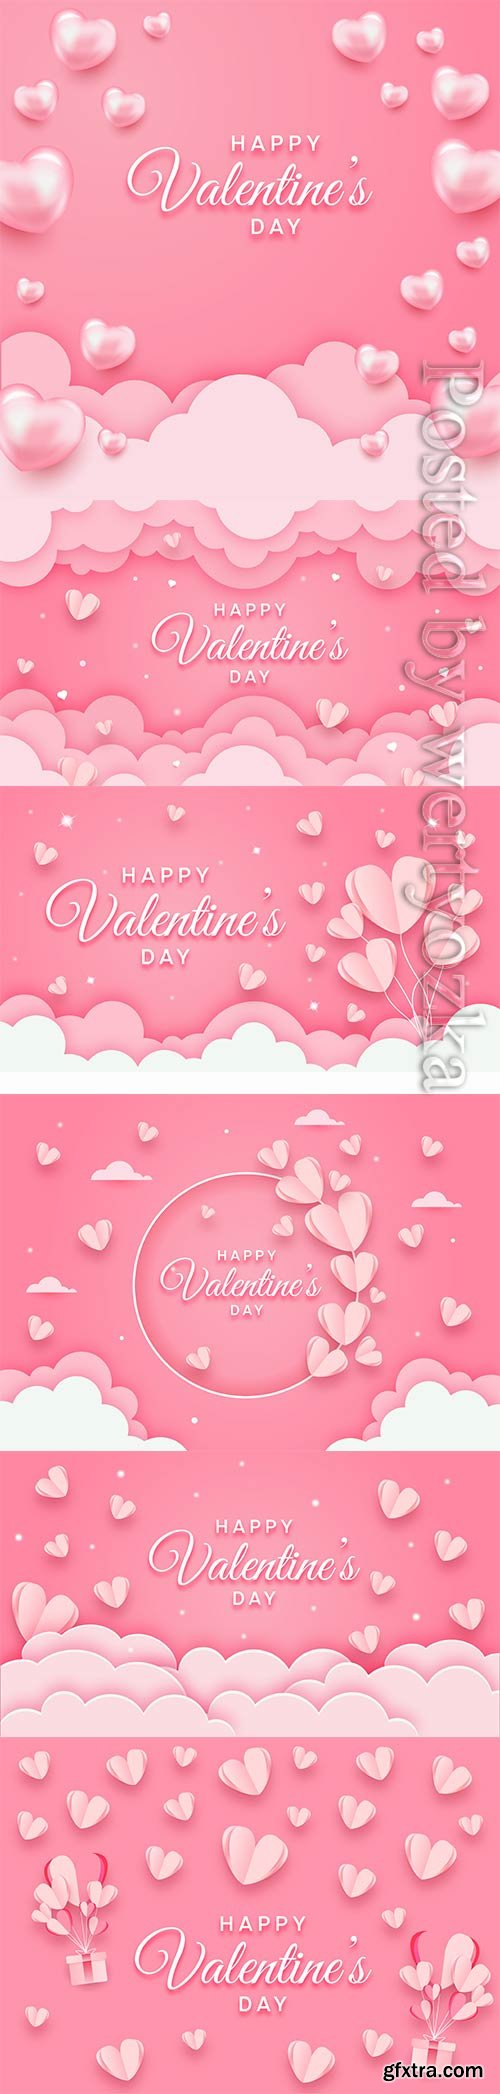 Happy valentines day concept in paper